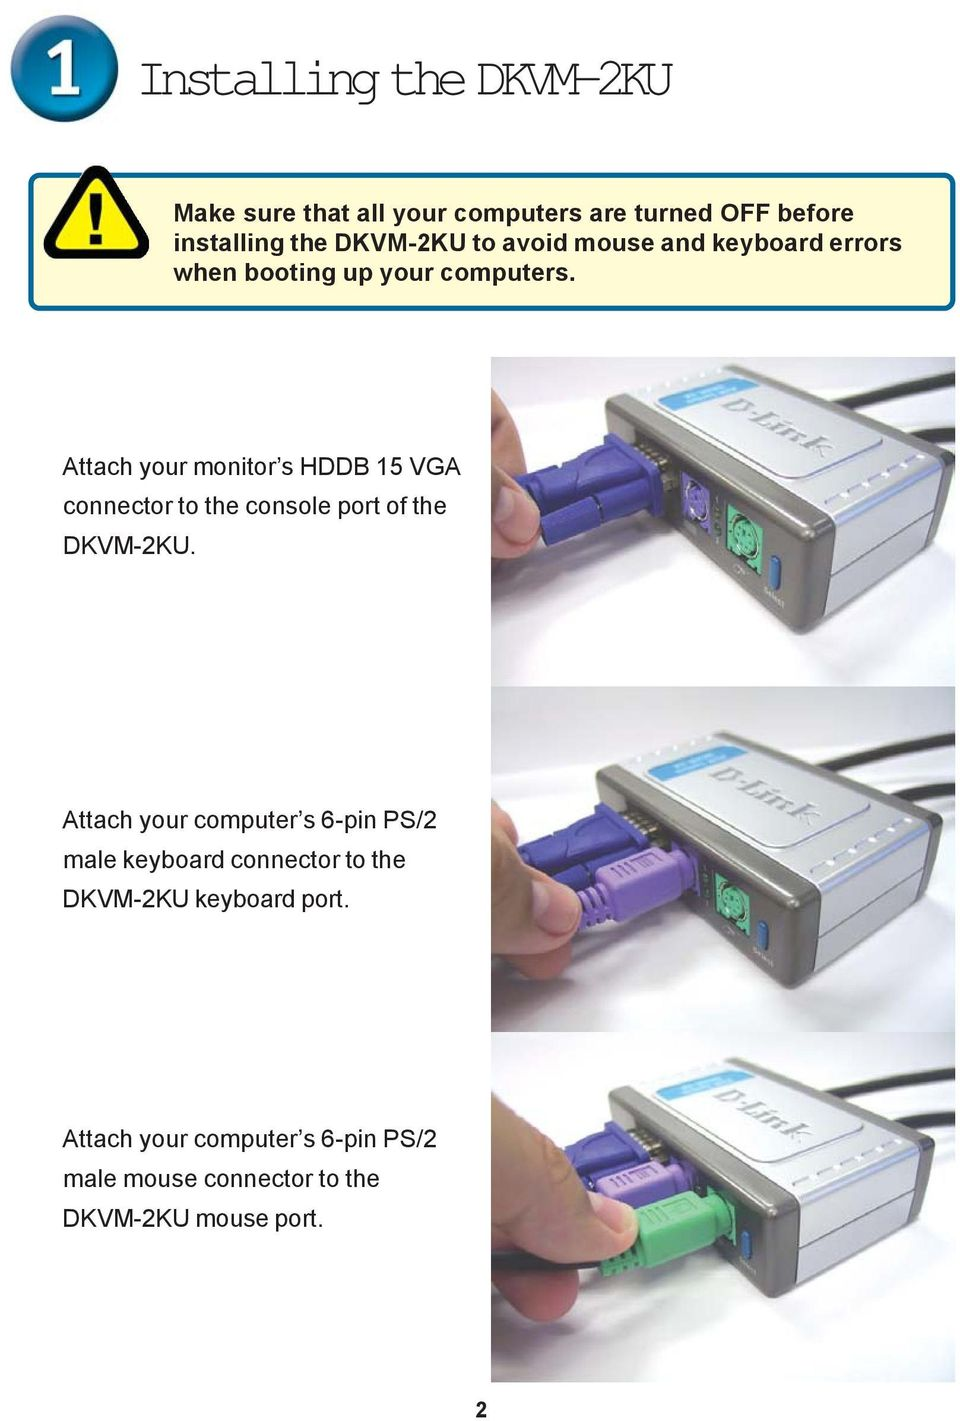 Attach your monitor s HDDB 15 VGA connector to the console port of the DKVM-2KU.